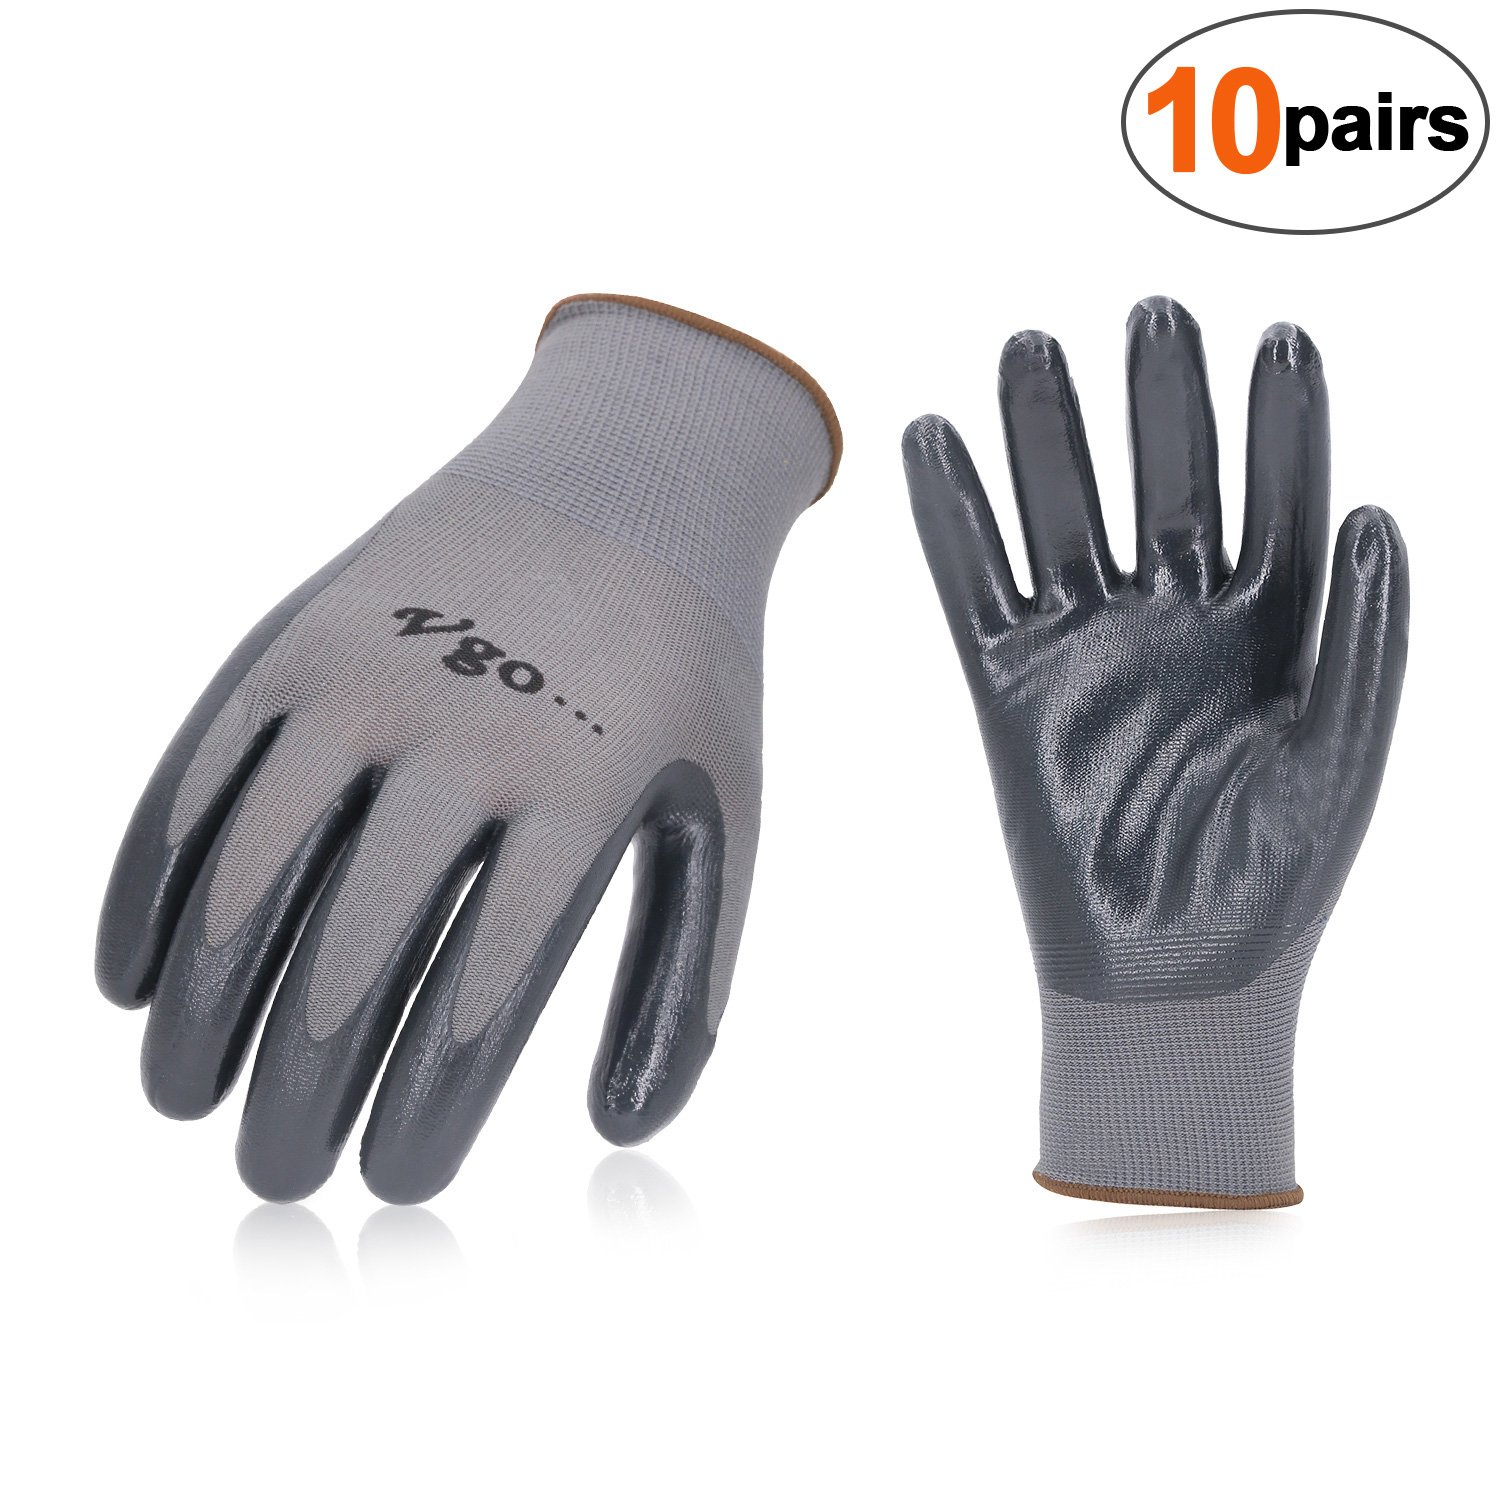 Vgo 10-Pairs Nitrile Coating Gardening and Work Gloves (Size M,Grey, NT2110)